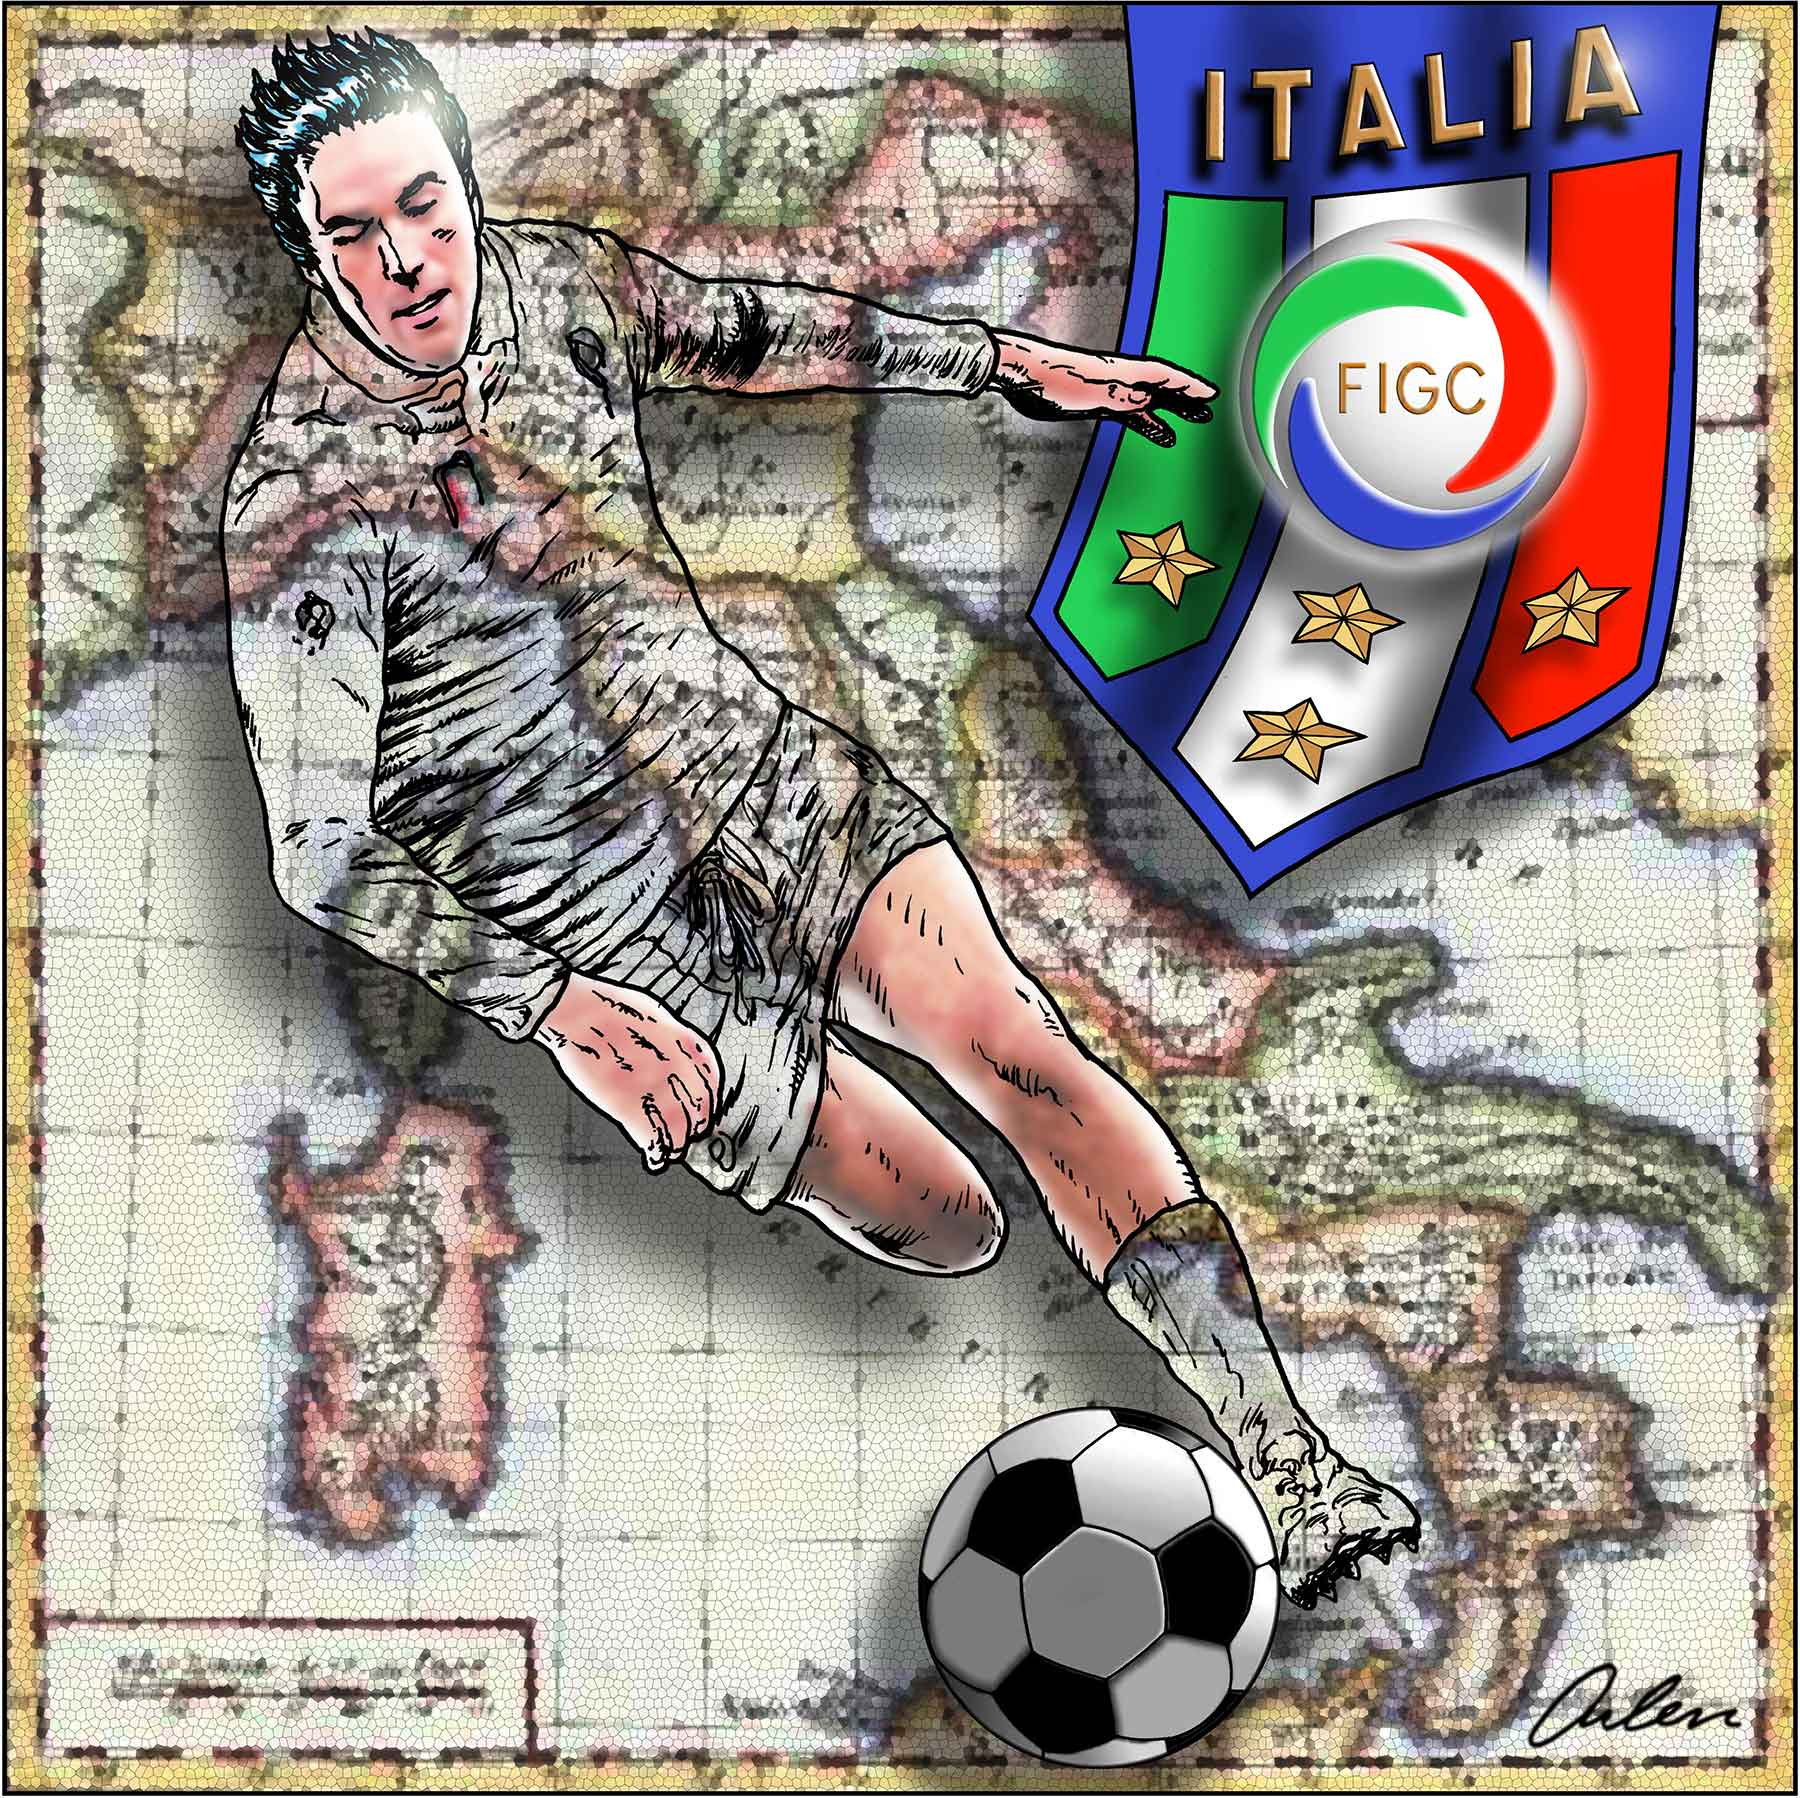 Arlen Schumer / Italian Soccer Poster Competition